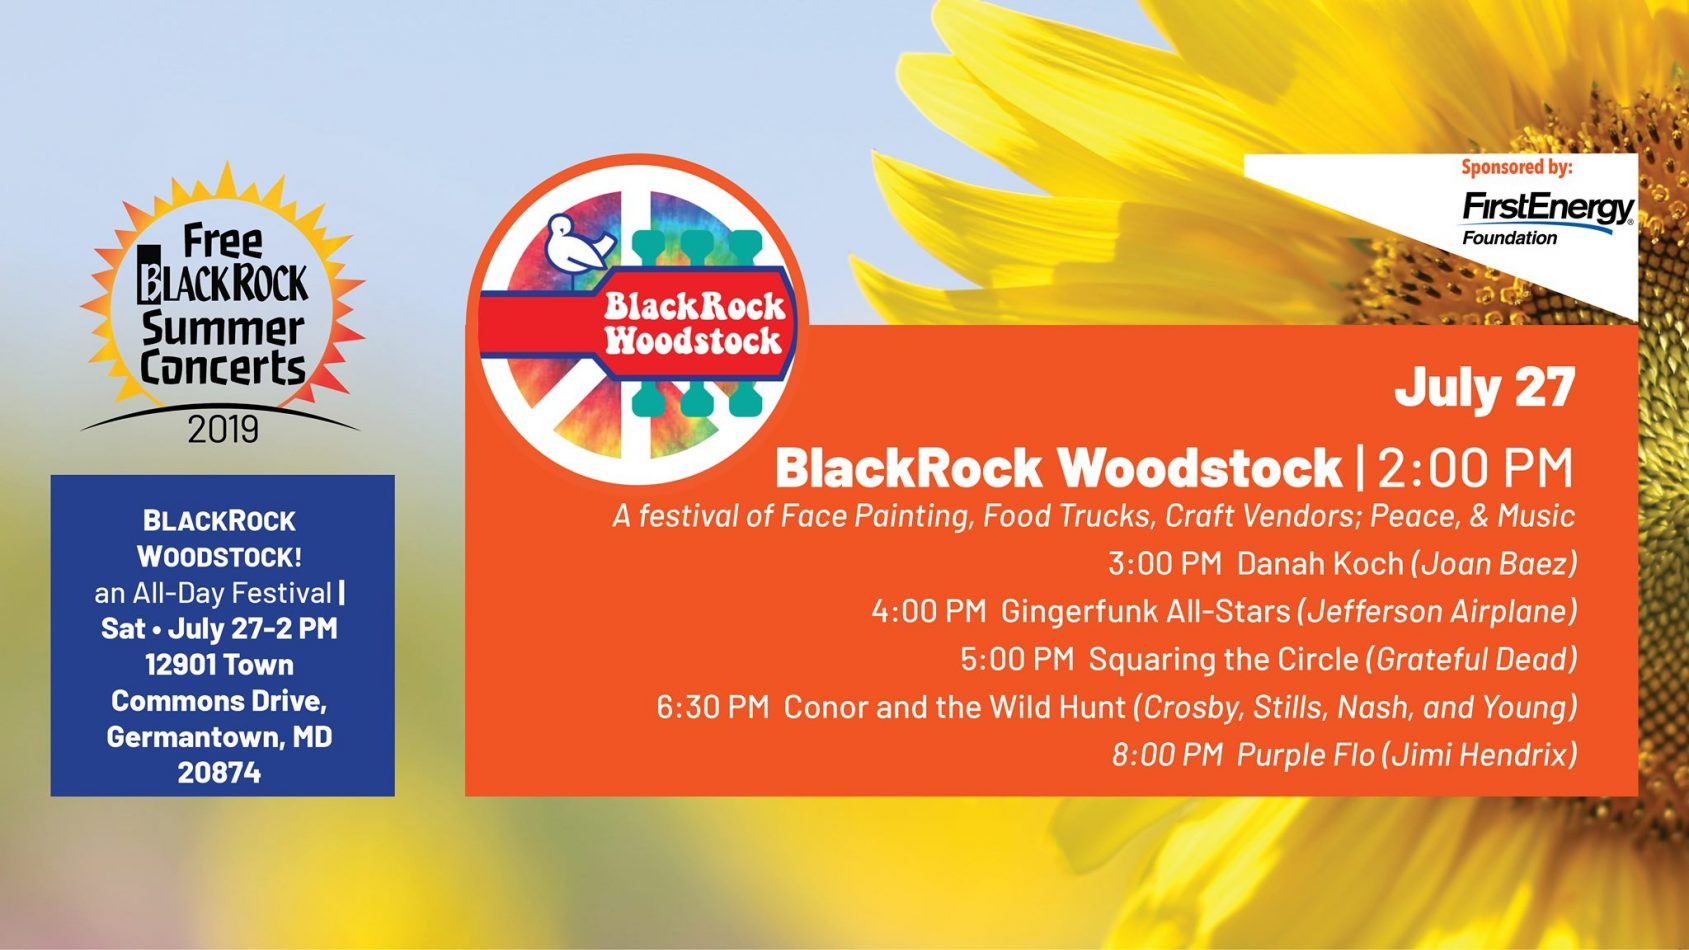 BlackRock celebrates the 50th Anniversary of Woodstock with an all-afternoon festival.